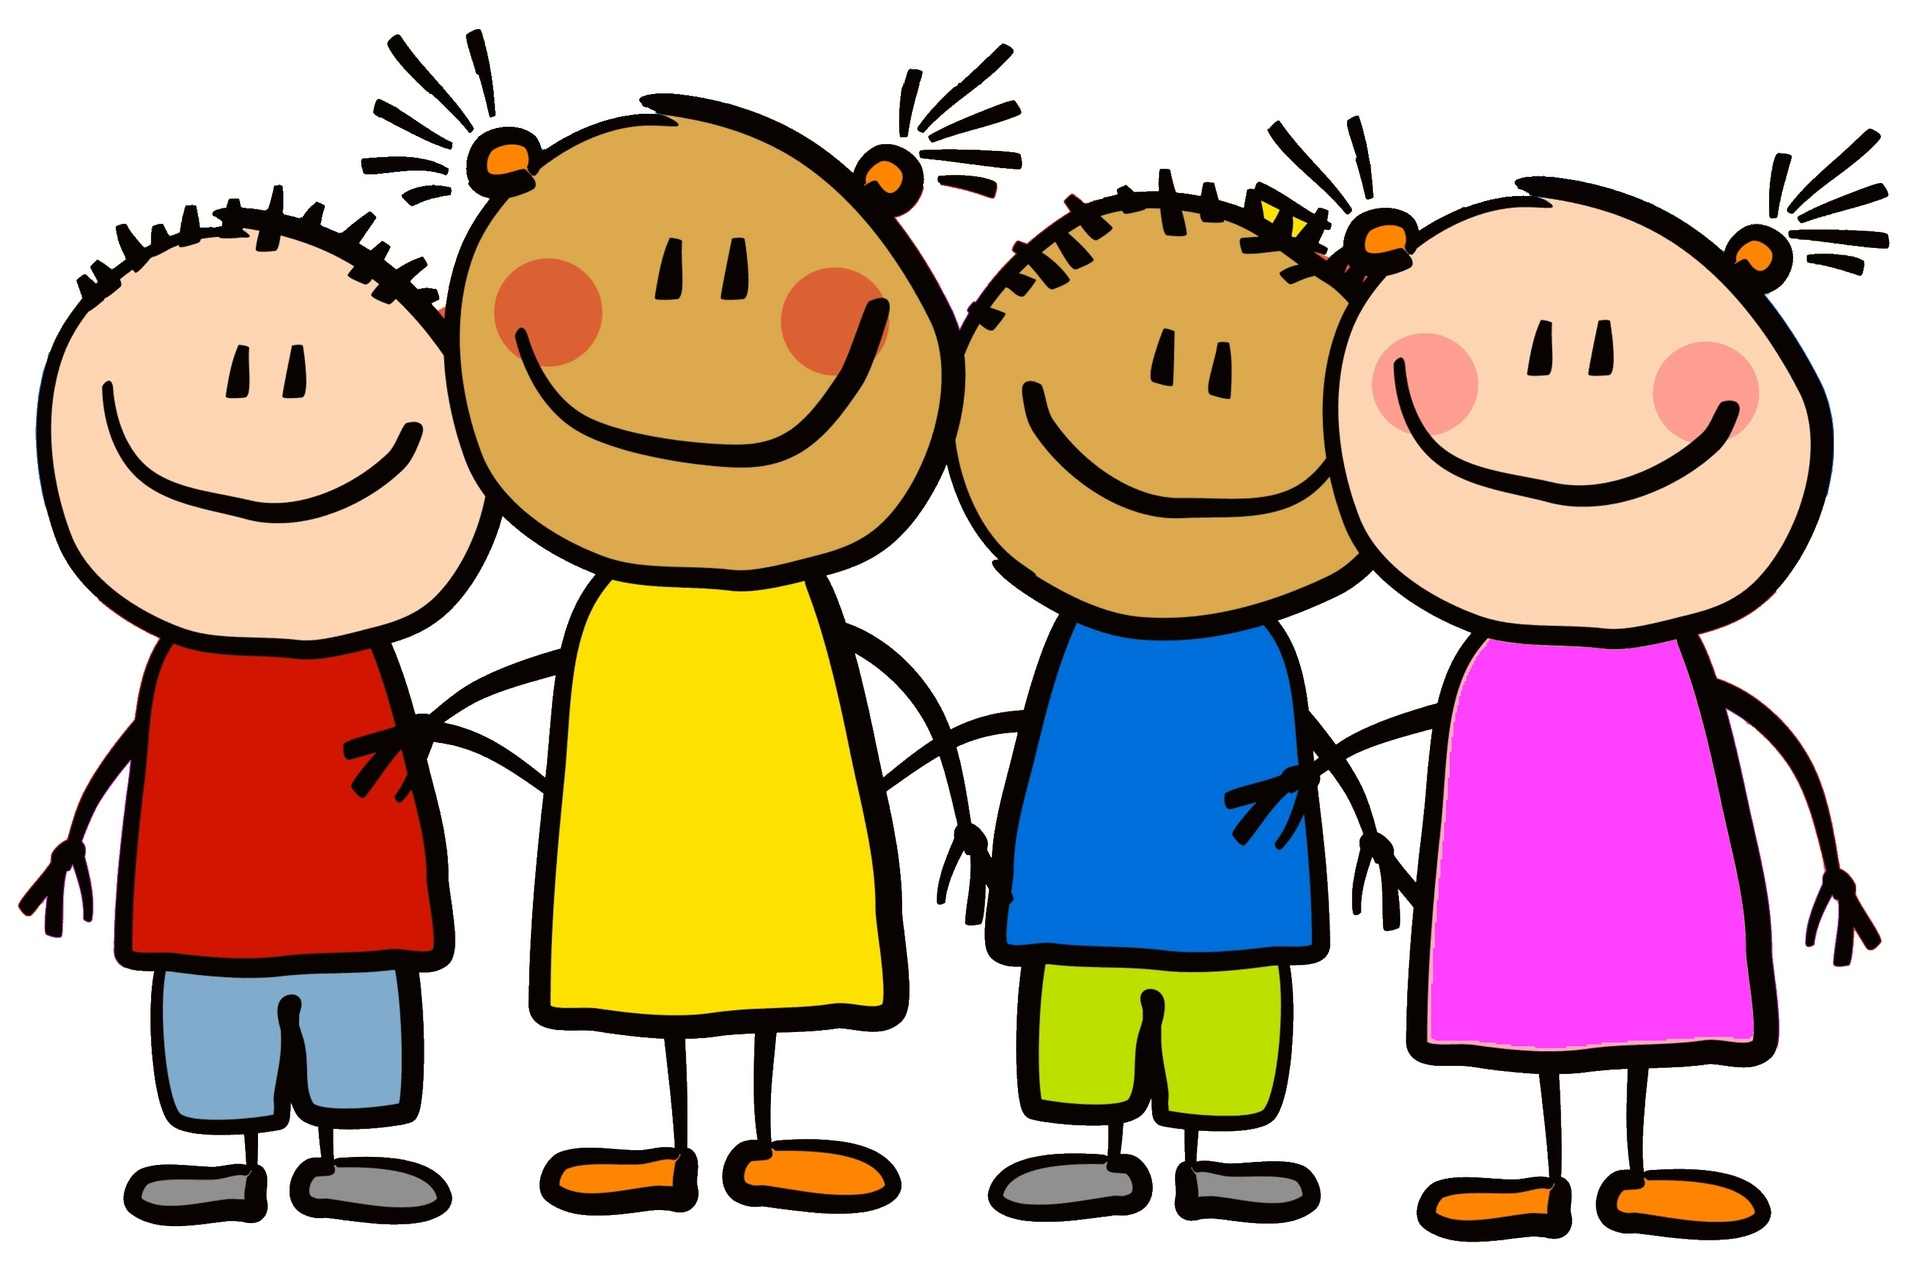 Meeting clipart trust Kids Meeting clipart Cliparts Zone